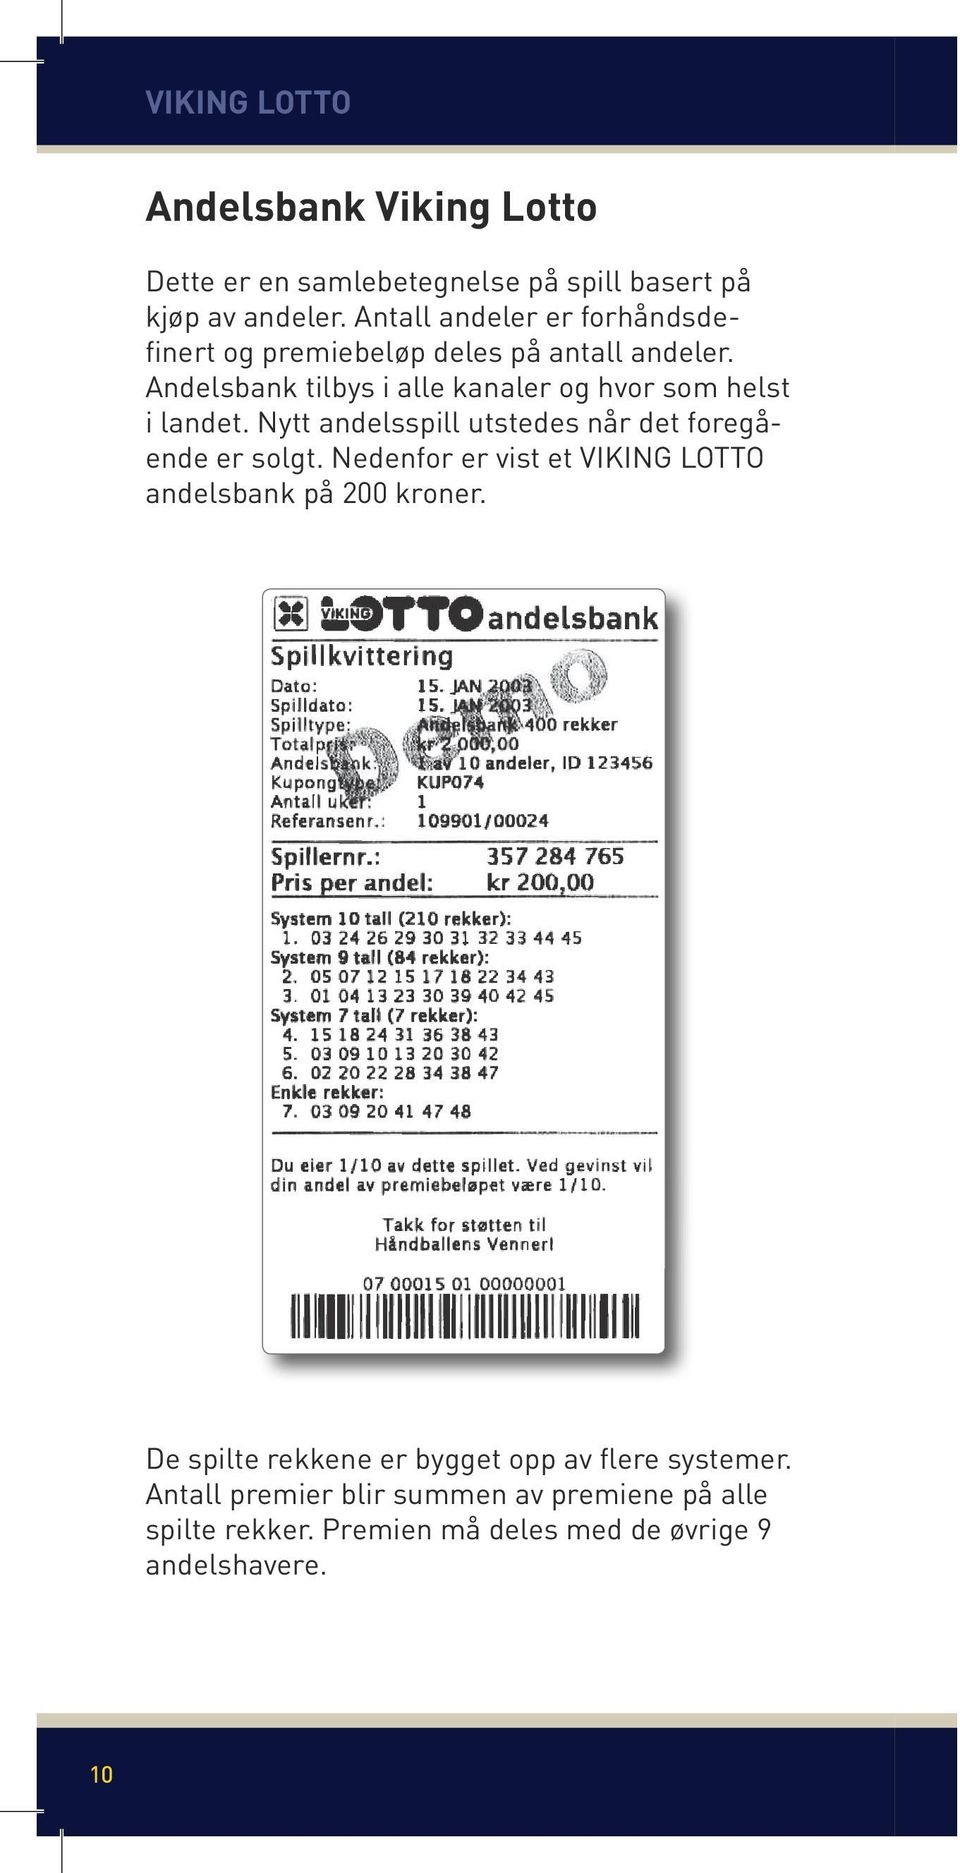 Viking lotto premie